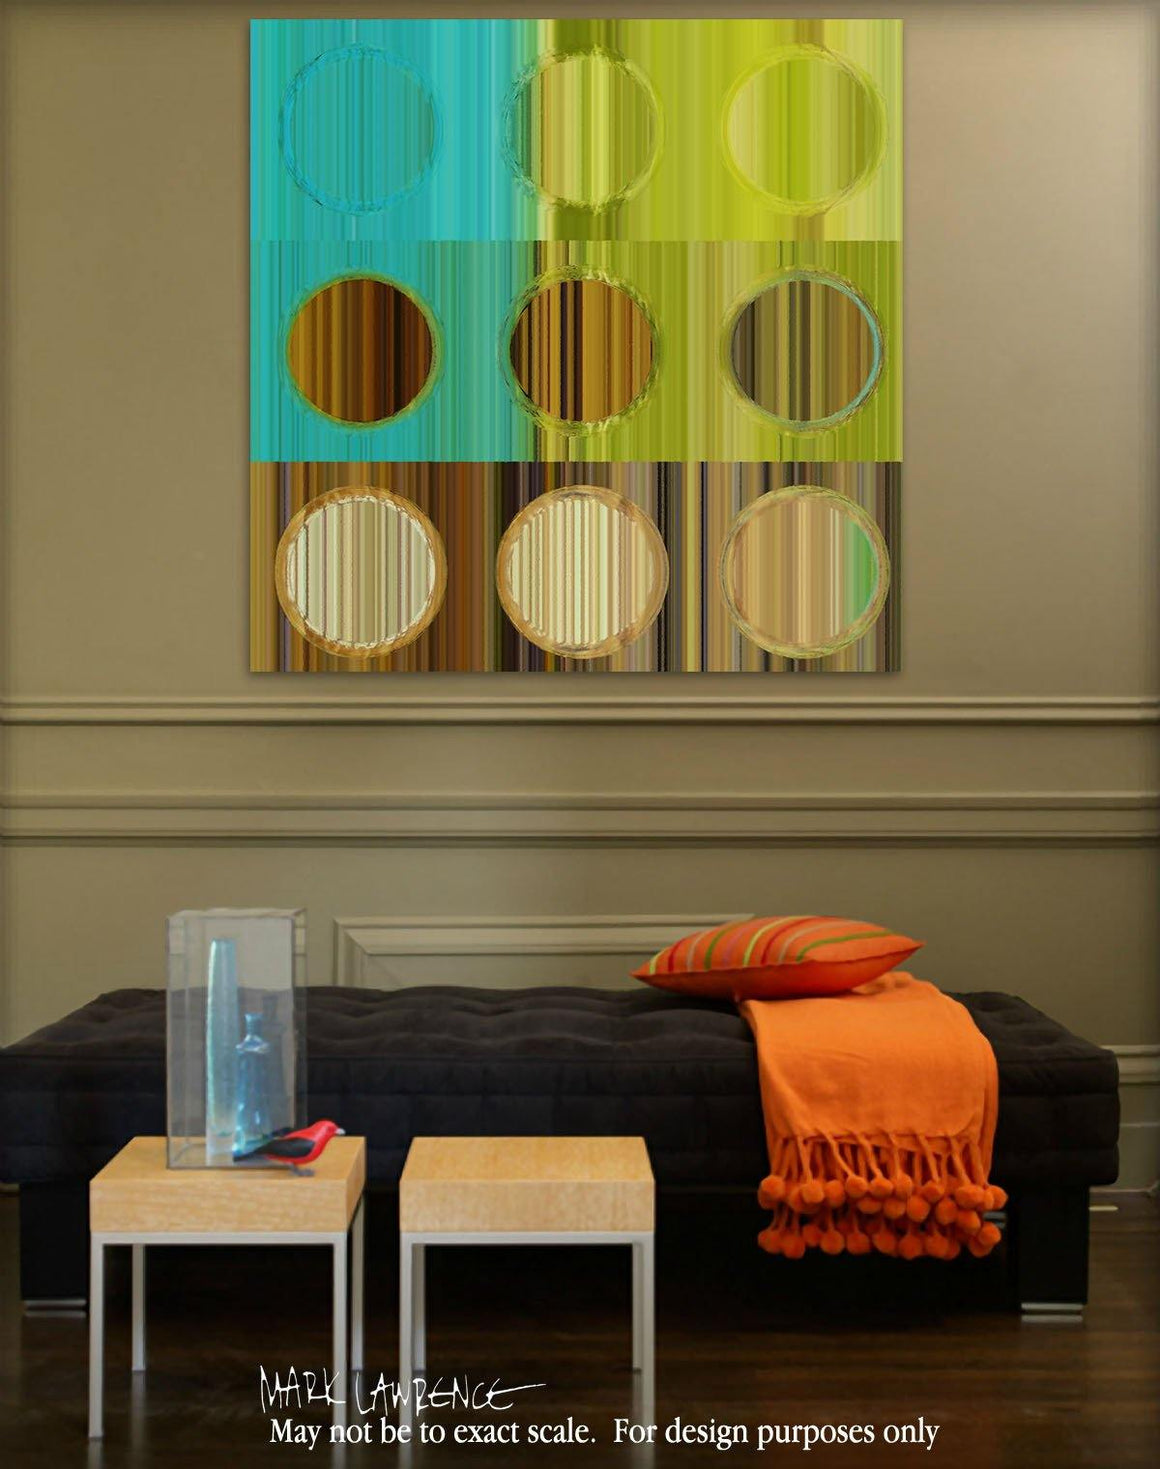 Interior Design Focal Point Art Inspiration- SeaBoard 1. Exclusive Traditional Fine Art Collection. Original limited edition signed canvas & paper giclees by internationally collected artist Mark Lawrenc